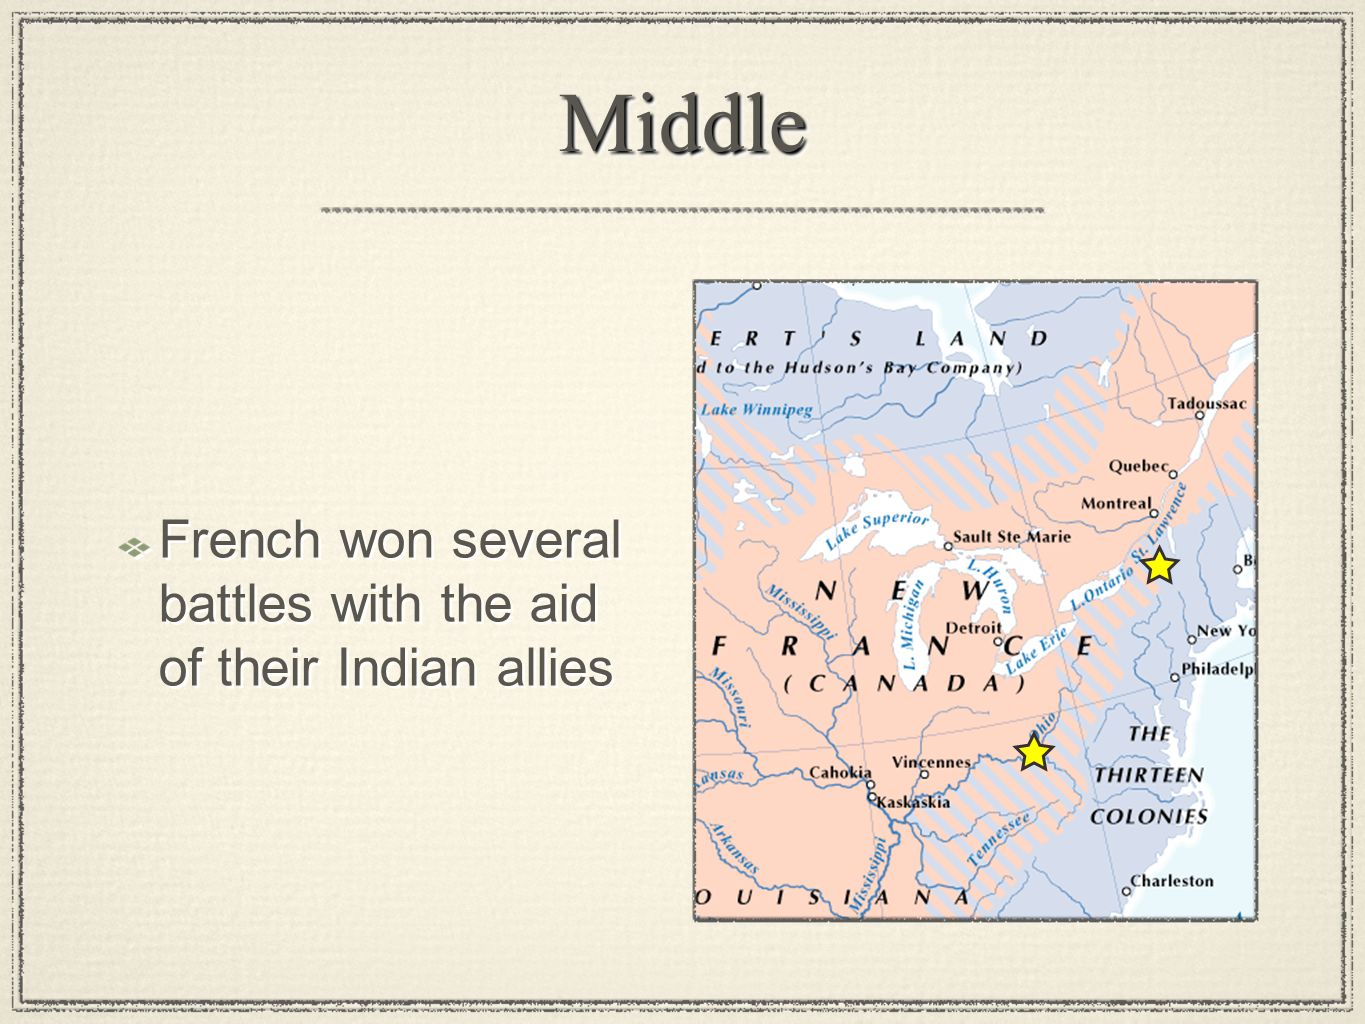 Middle French won several battles with the aid of their Indian allies